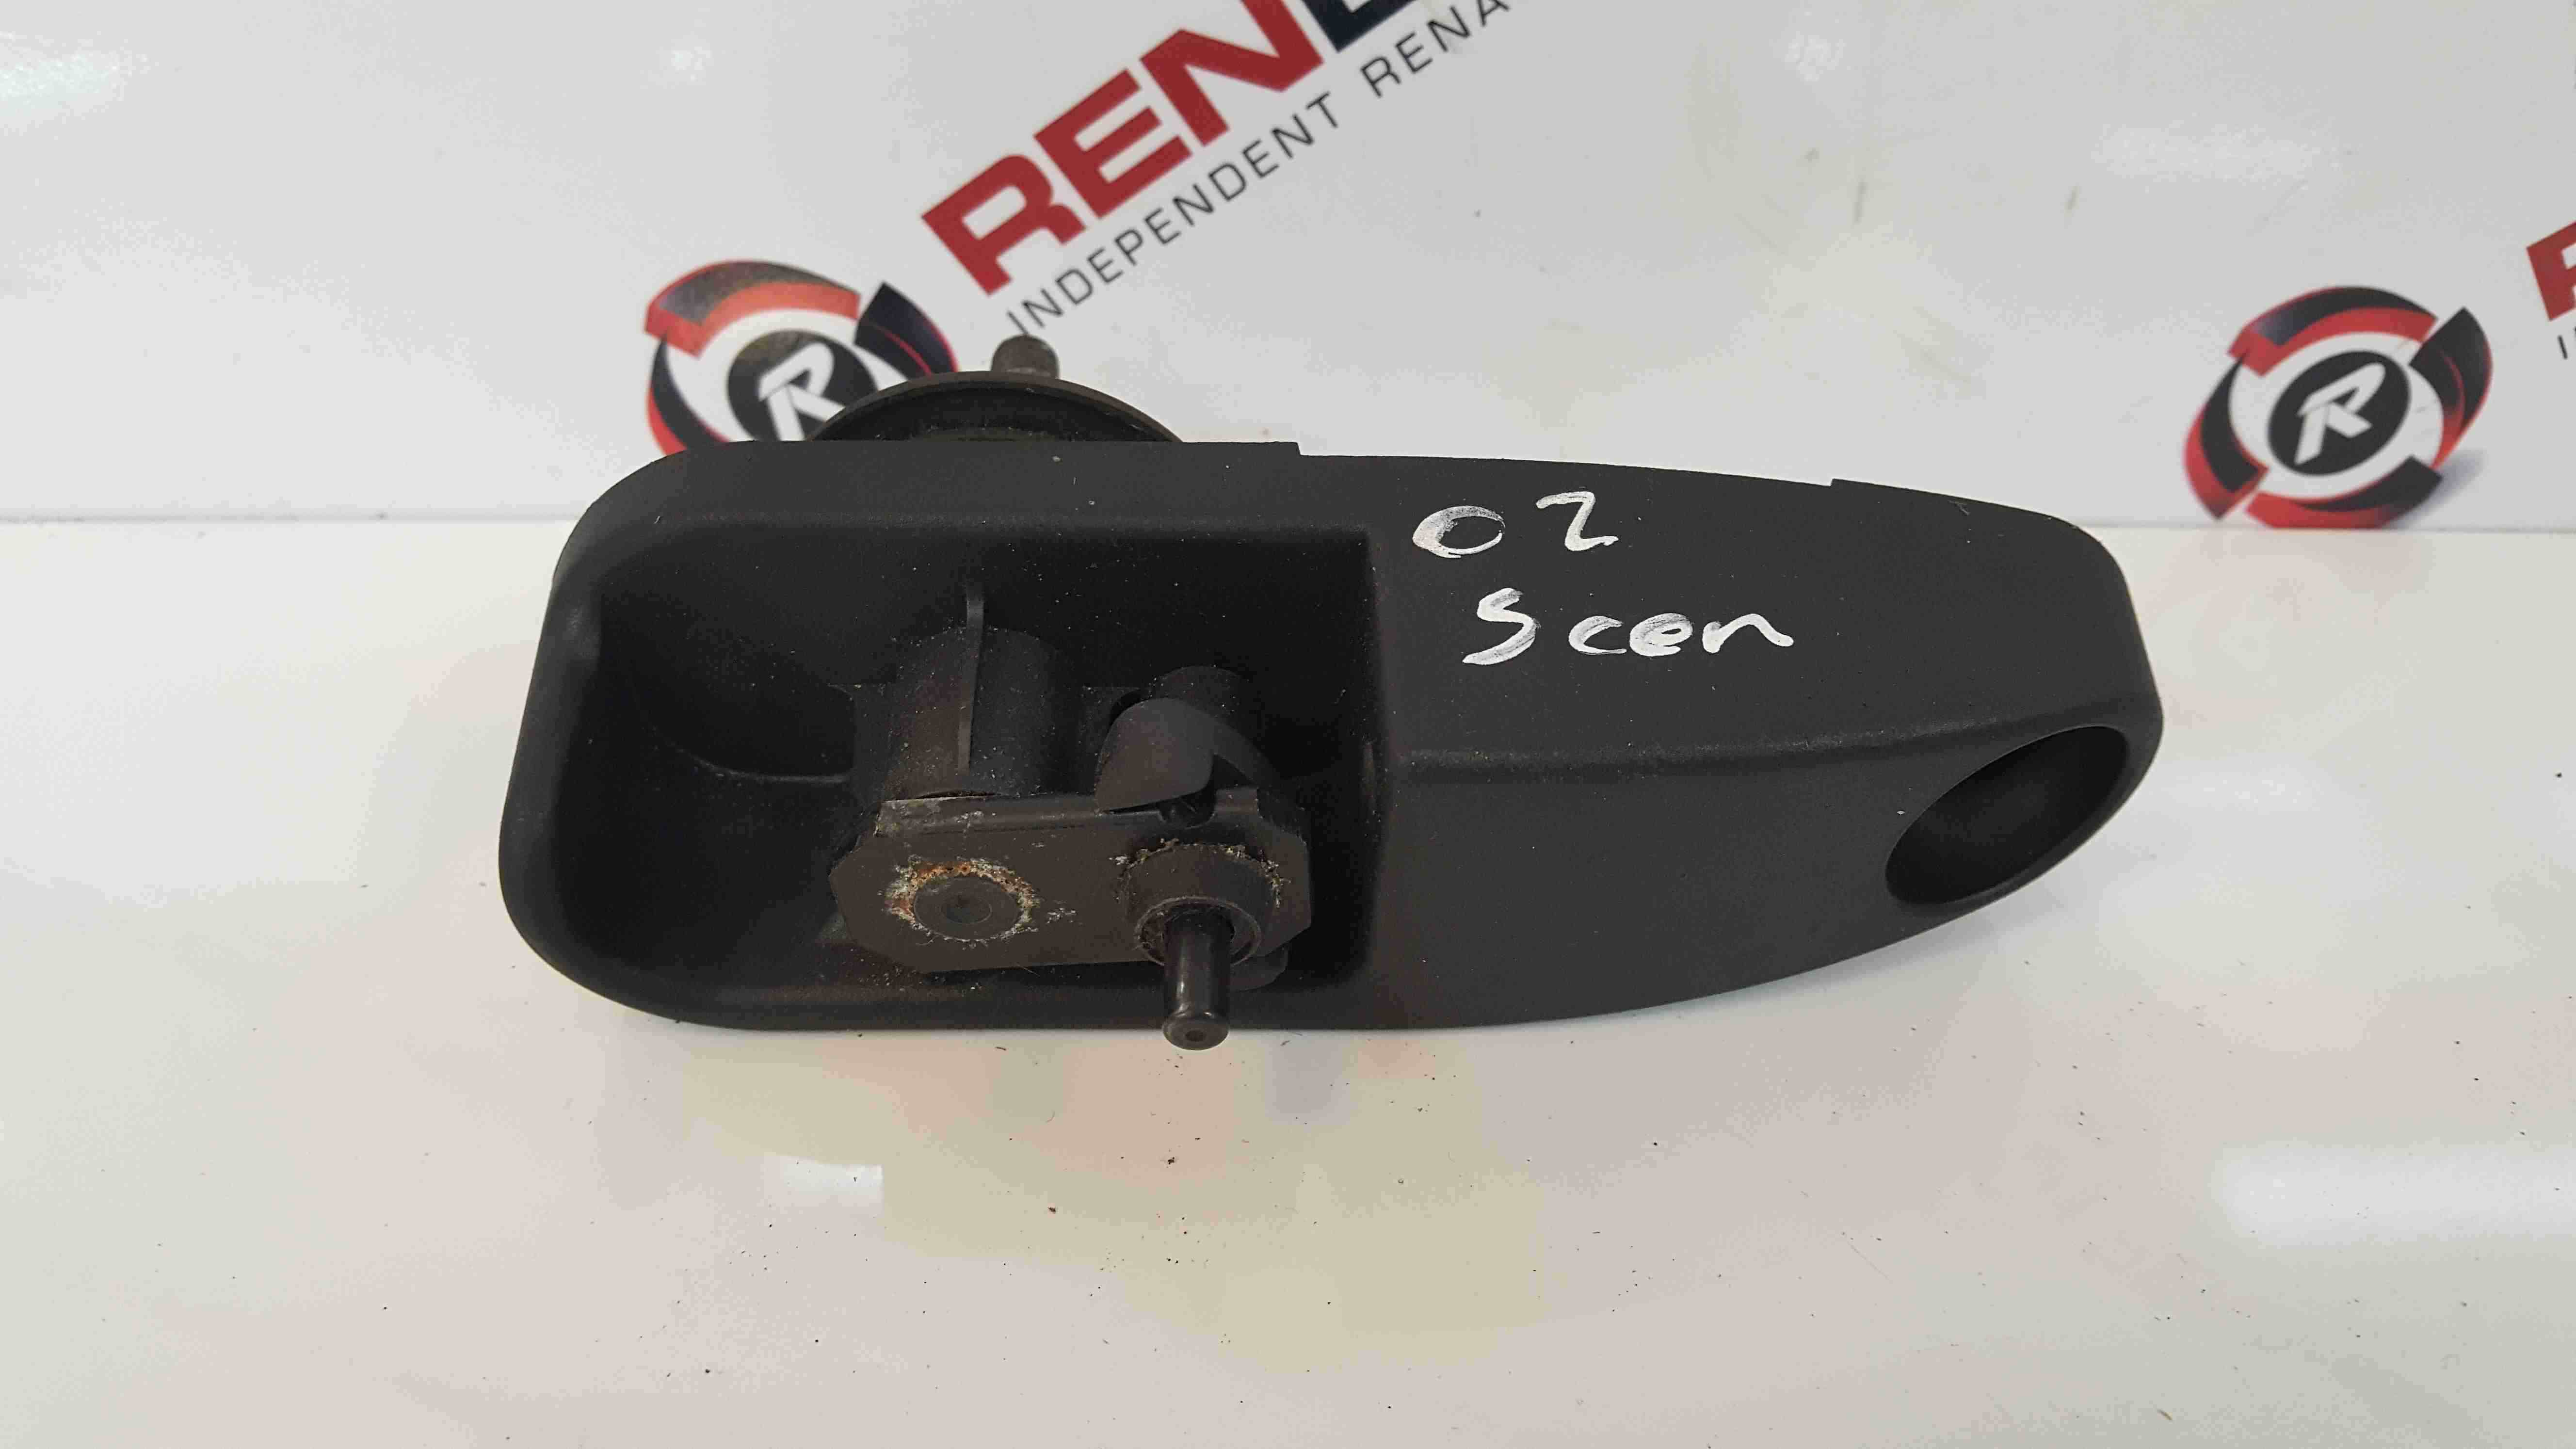 Renault Scenic MK1 1999-2003 Rear Wiper Mechanism Spindle Spines Through Glass